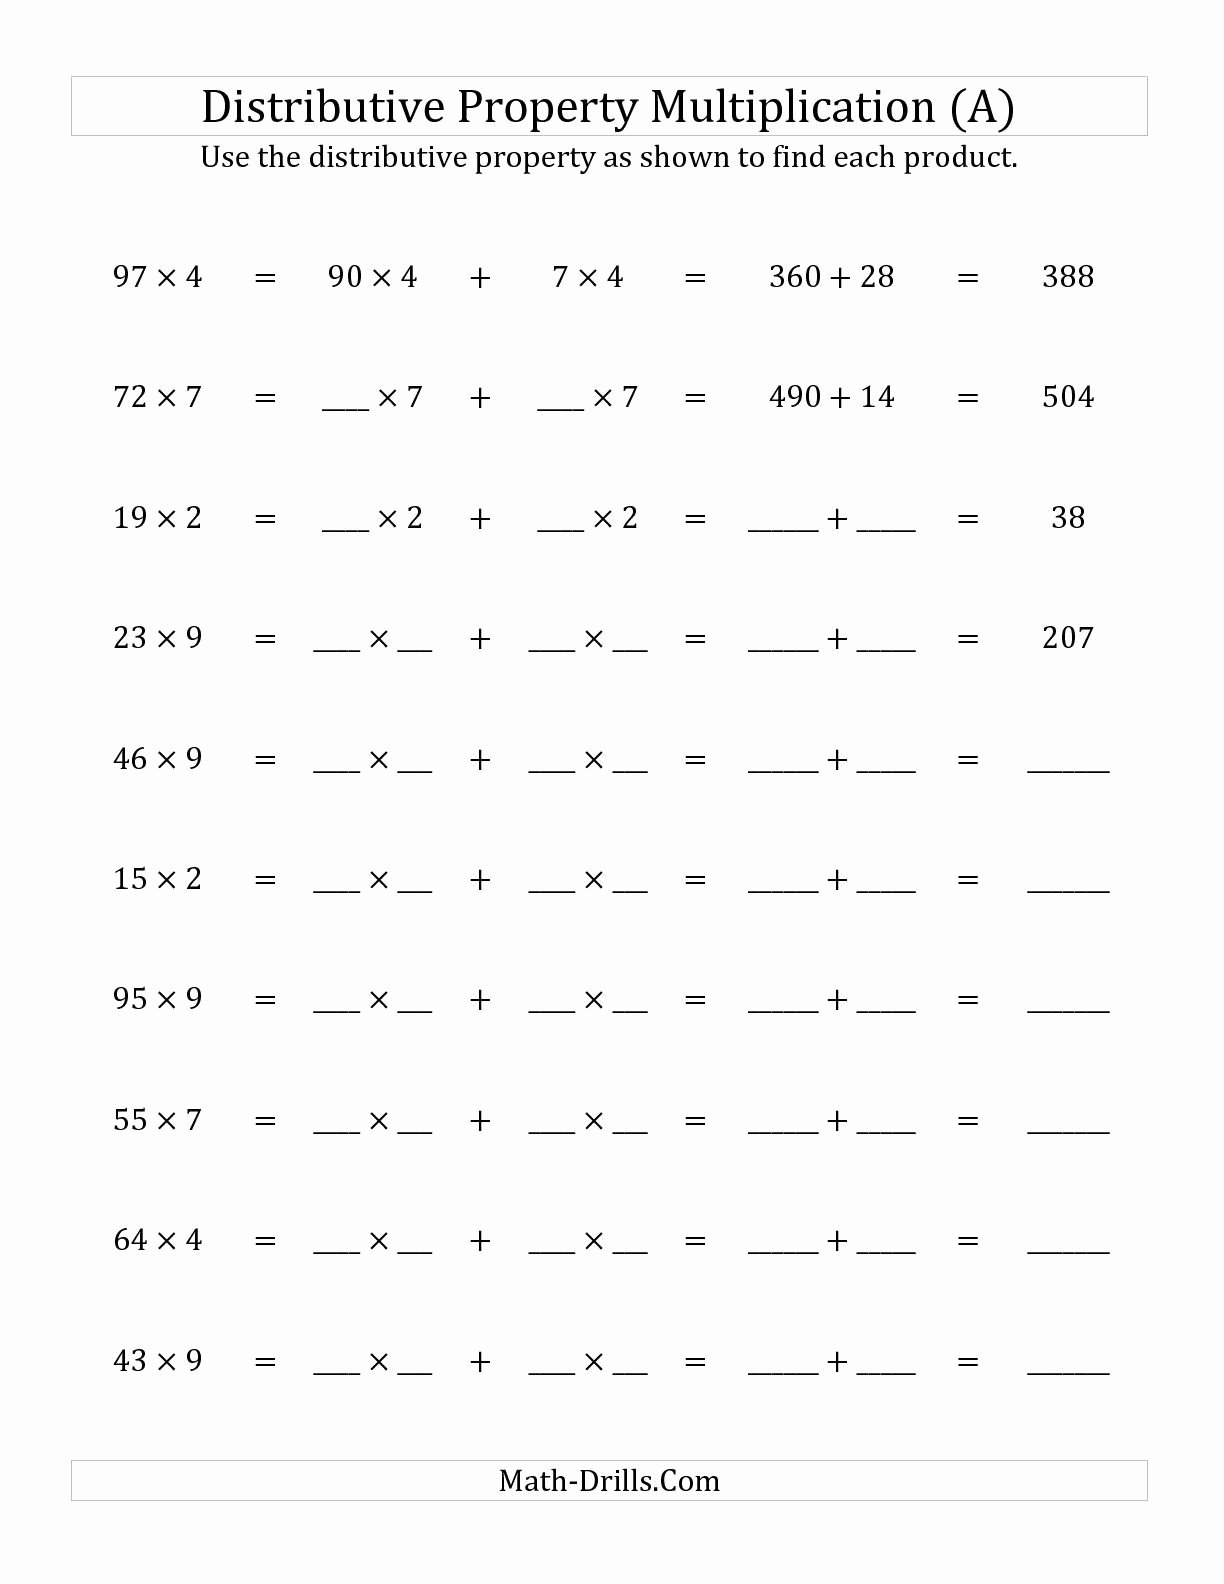 Commutative Property Of Multiplication Worksheets Inspirational the Multiply 2 Digit by 1 Digit Numbers Using the